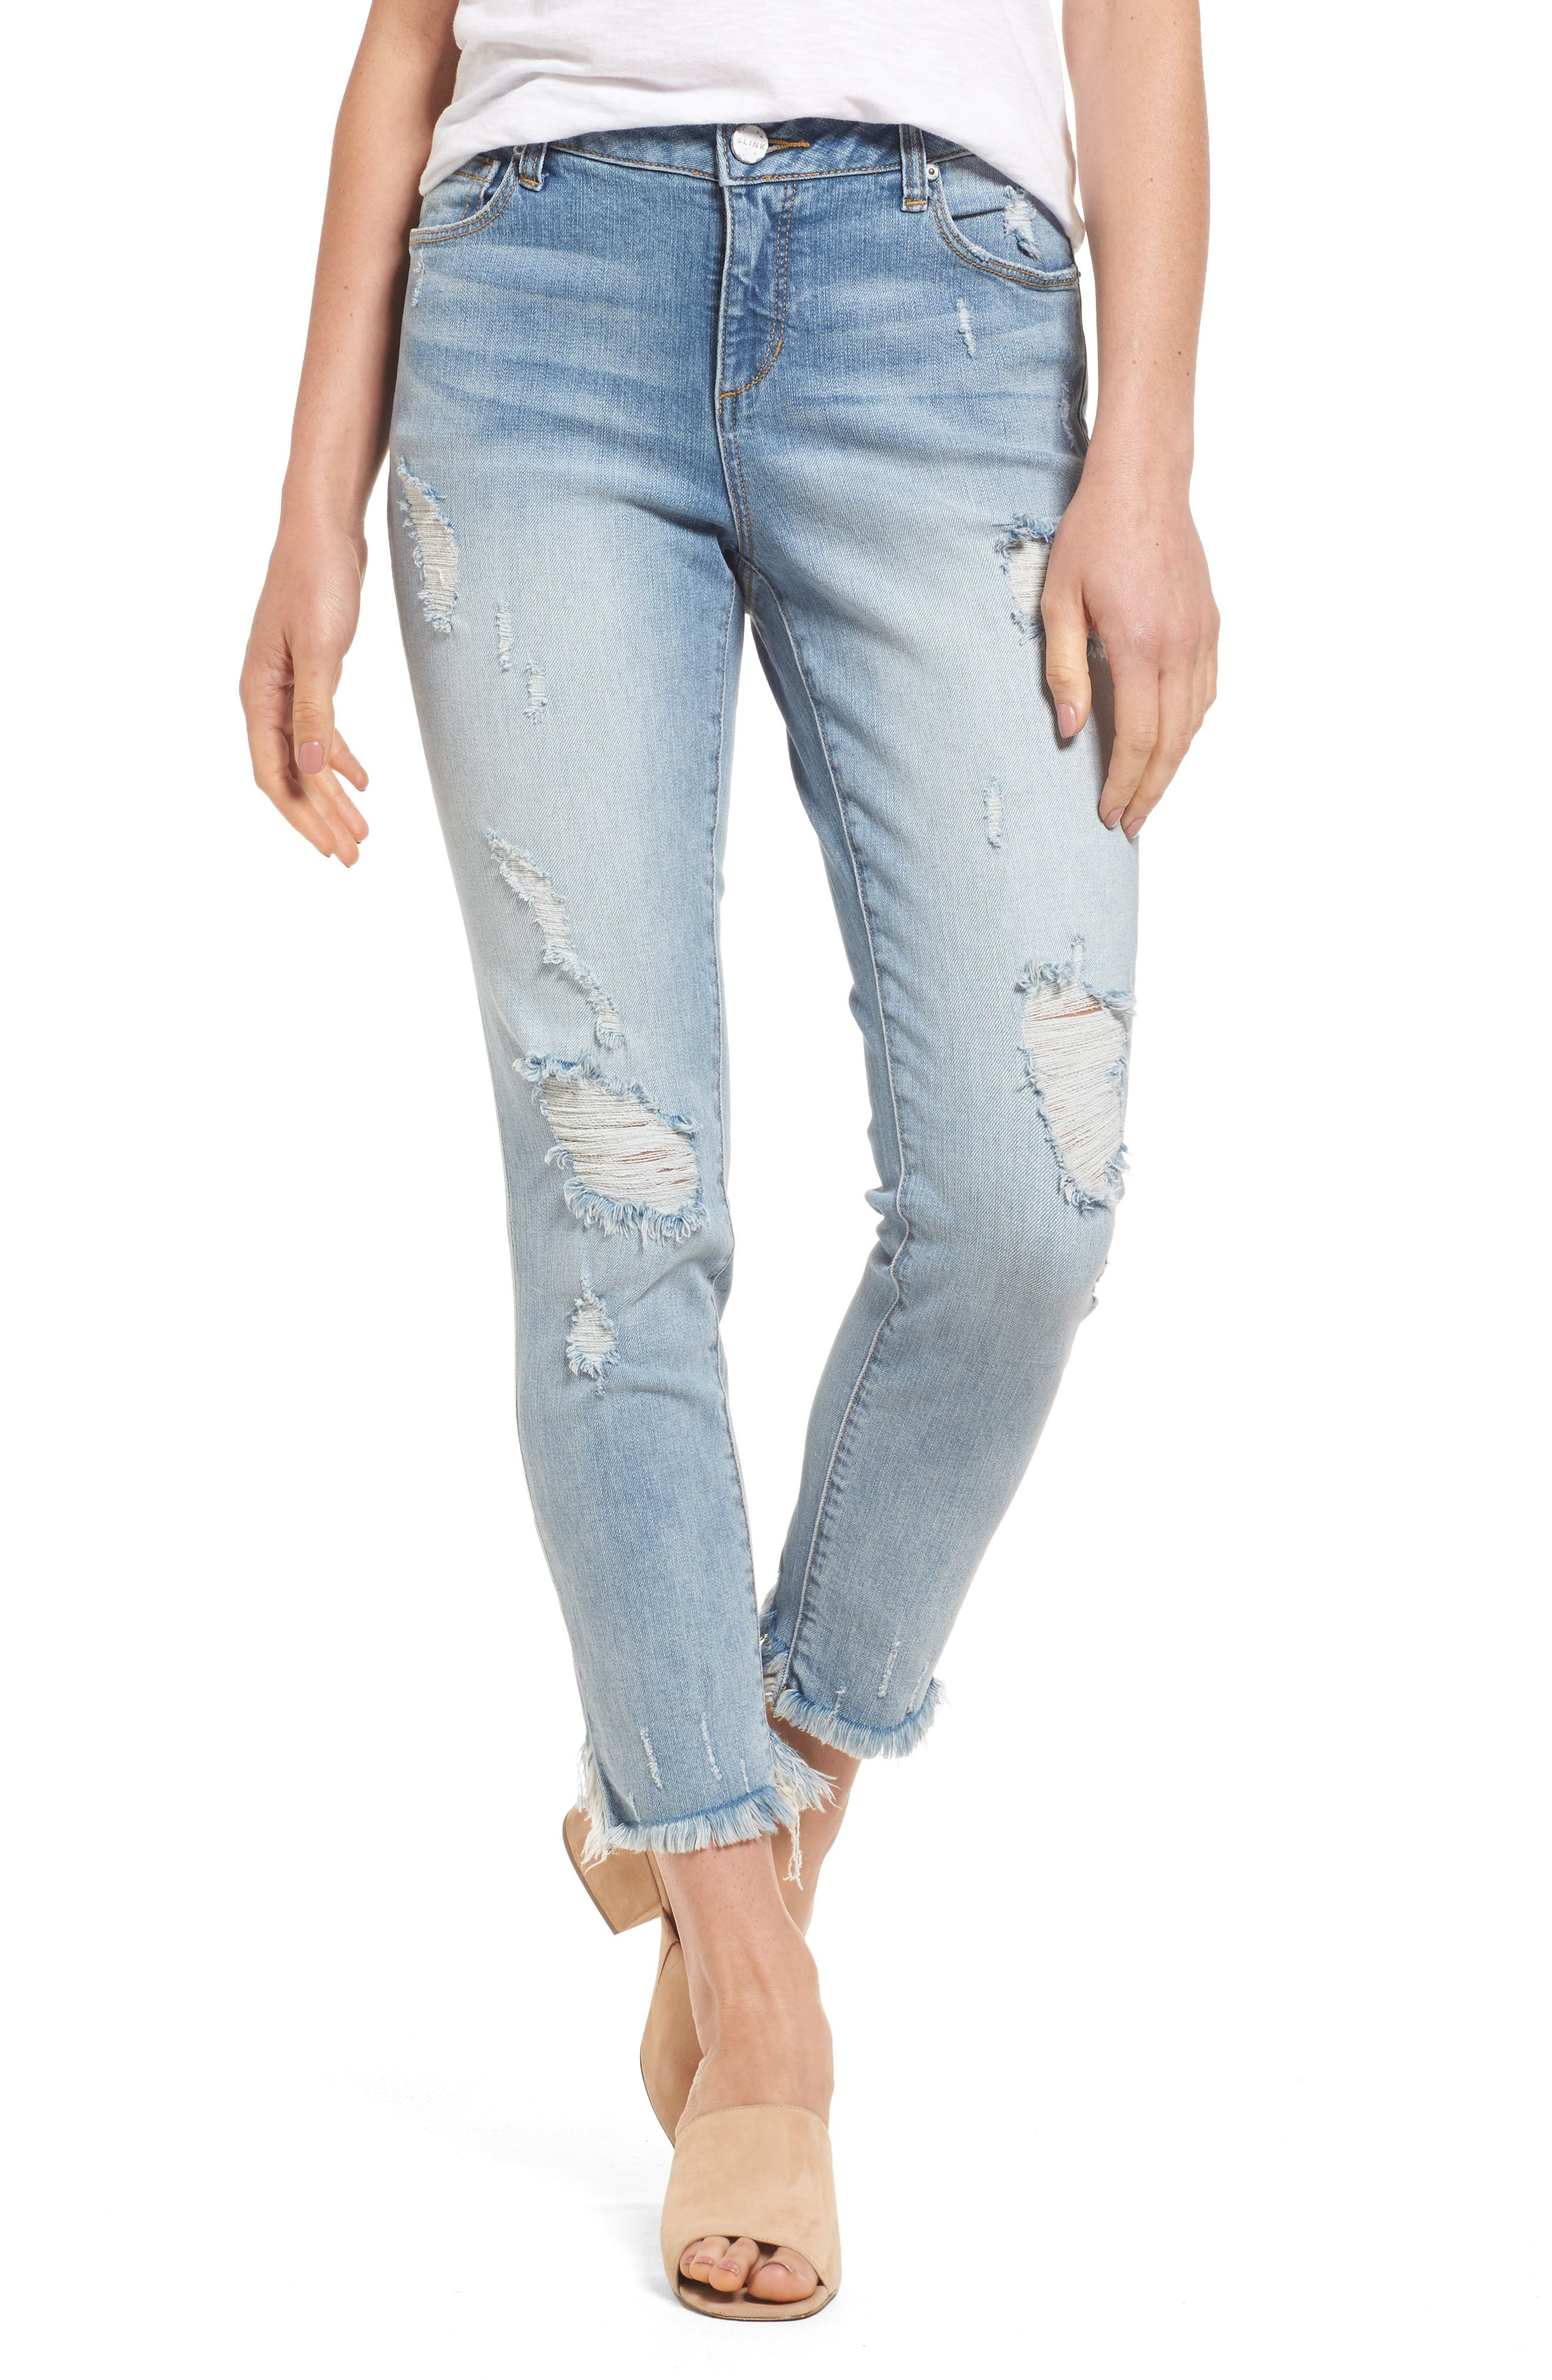 SLINK JEANS, Frayed Hem Easy Fit Ankle Jeans, Main thumbnail 1, color, MAGGIE